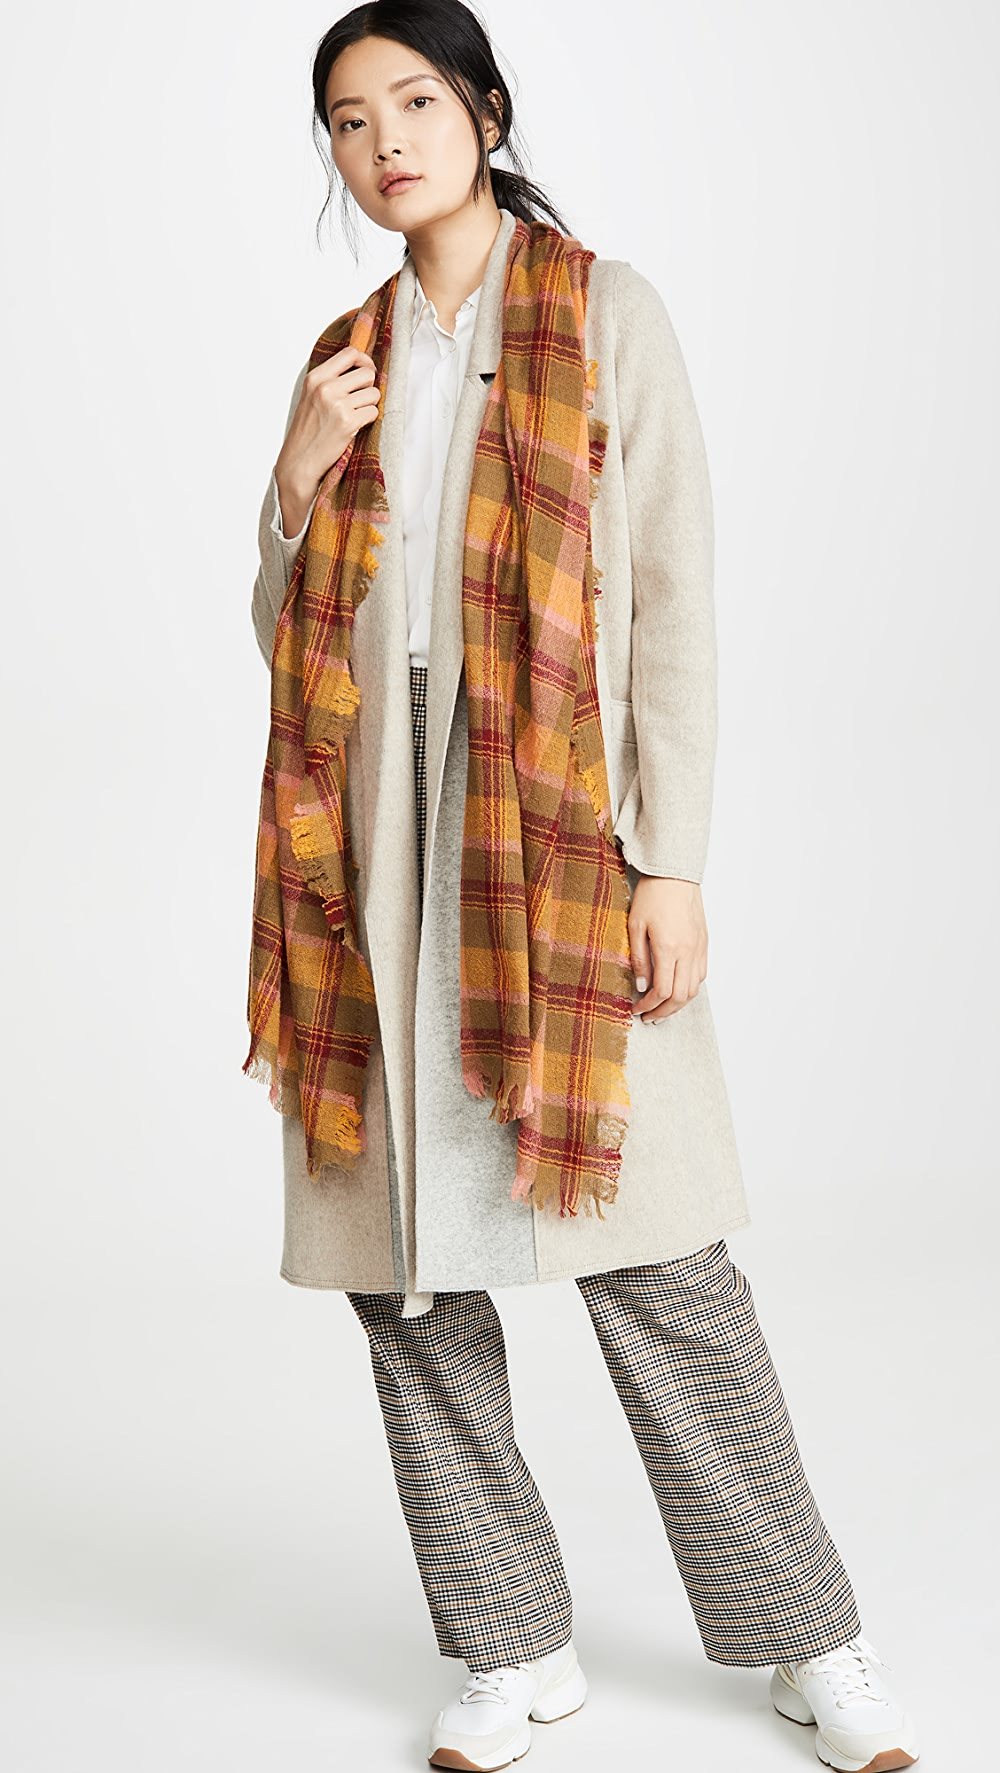 Considerate Madewell - Colorful Plaid Scarf Handsome Appearance